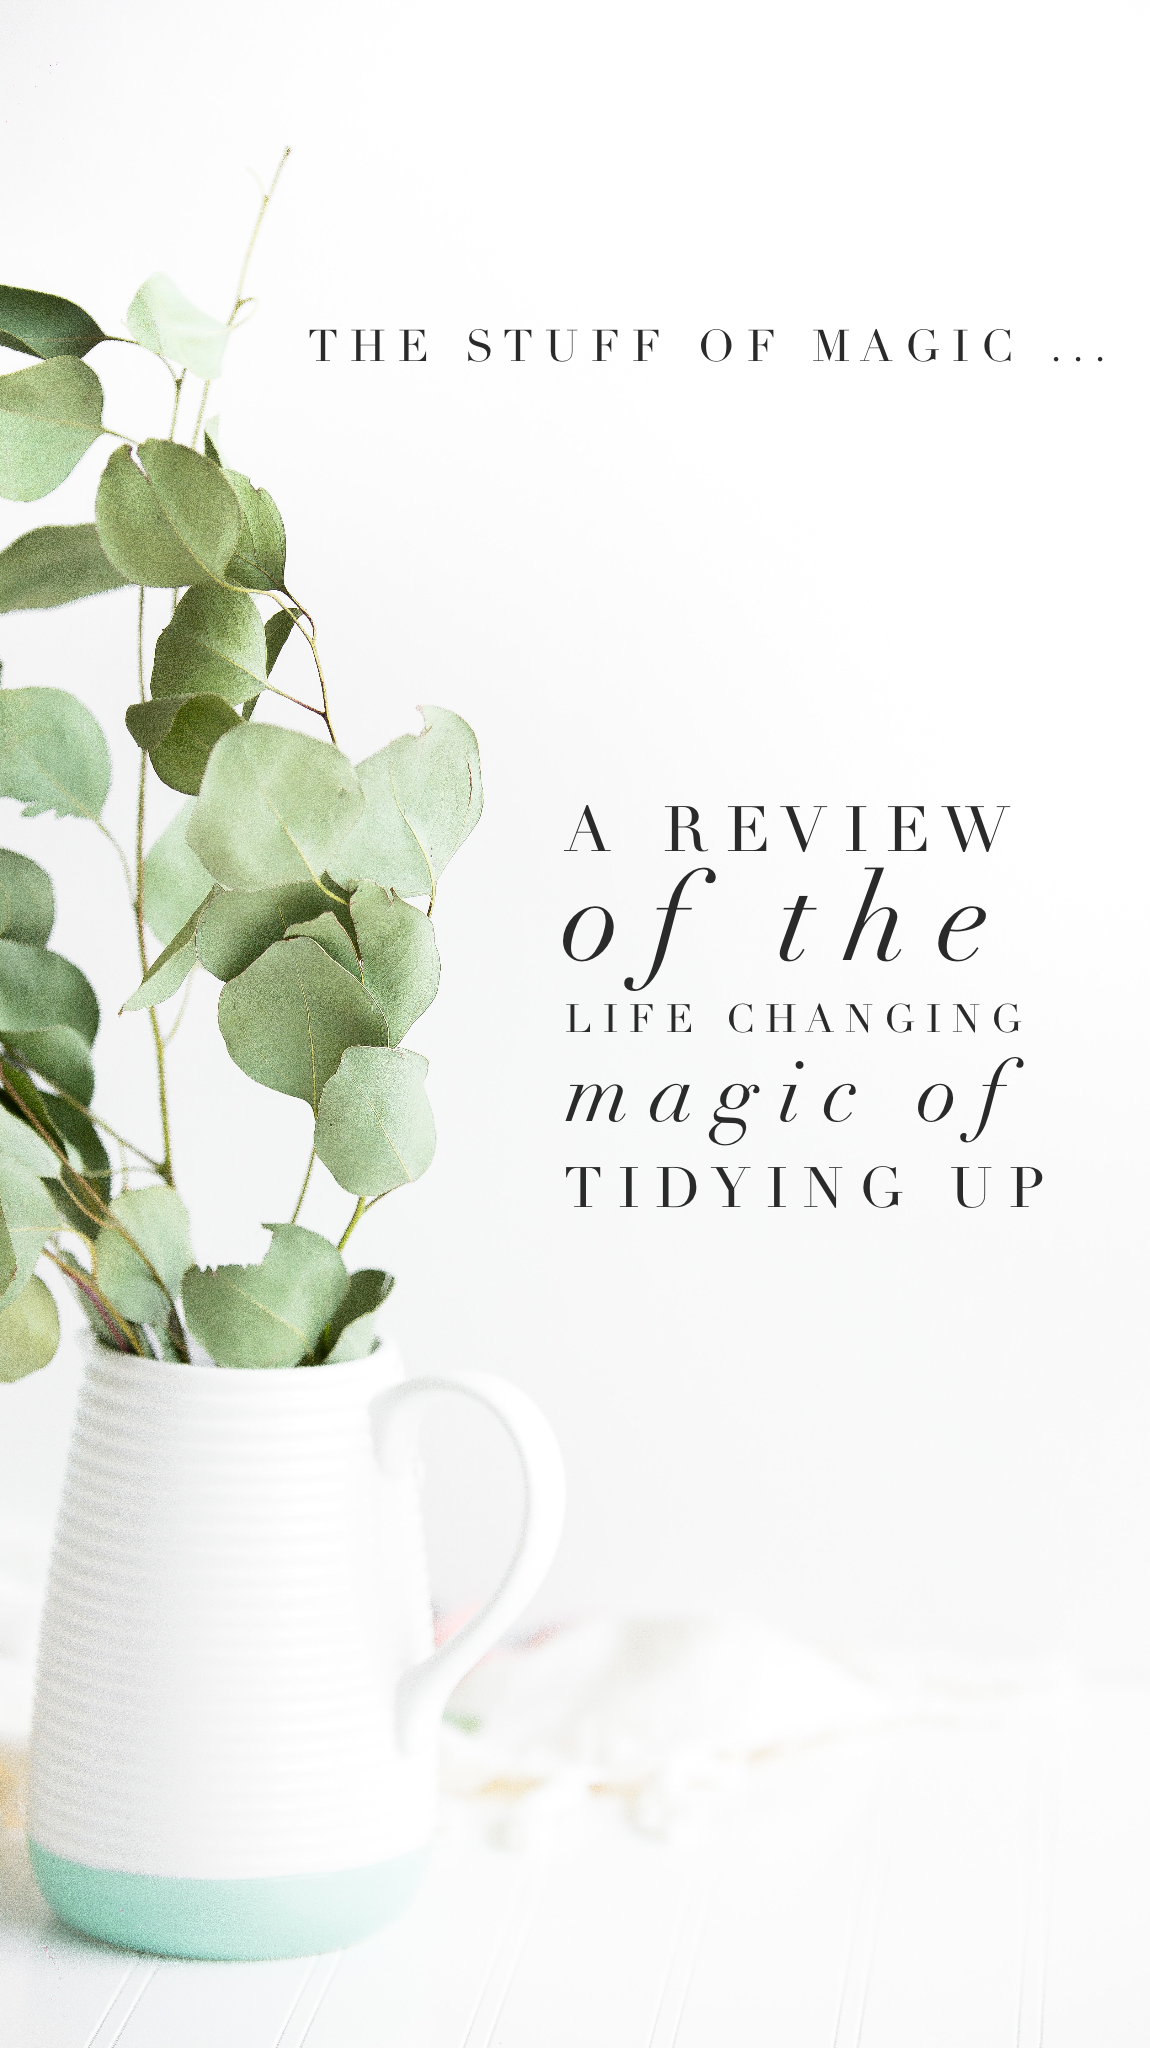 The Stuff of Magic ... A review of The Life-Changing Magic of Tidying Up